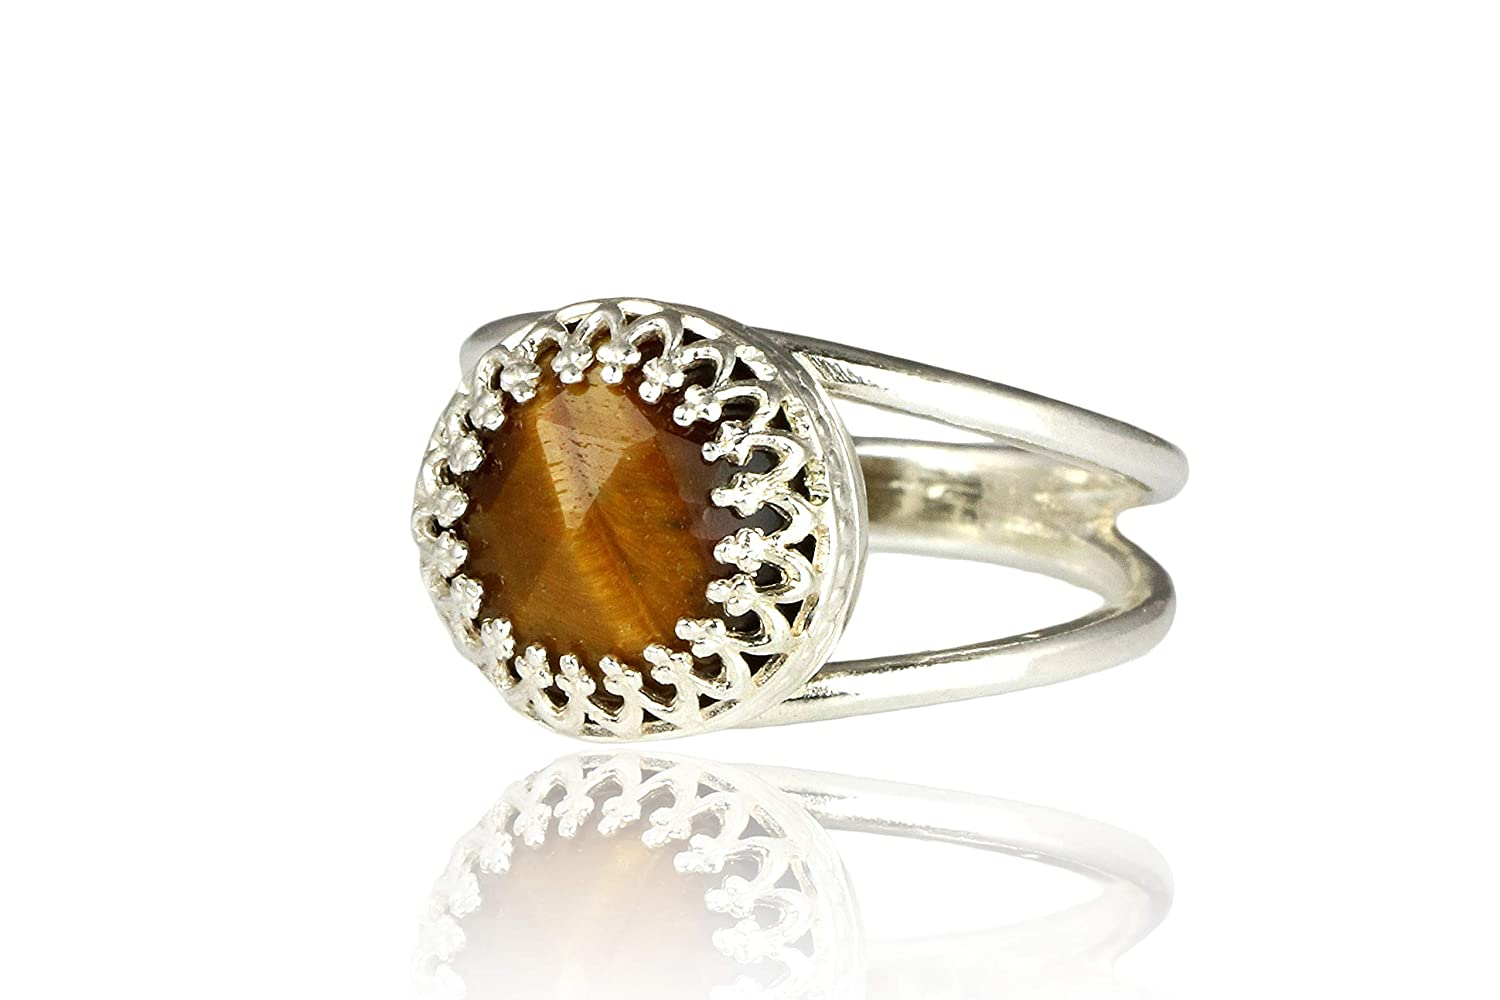 Anemone Jewelry 925 Sterling Silver Solitaire Ring Ring Jewelry Handmade by Artisan Fashion Jewelry for Women Genuine Brown 10mm Tiger Eye Gemstone Natural